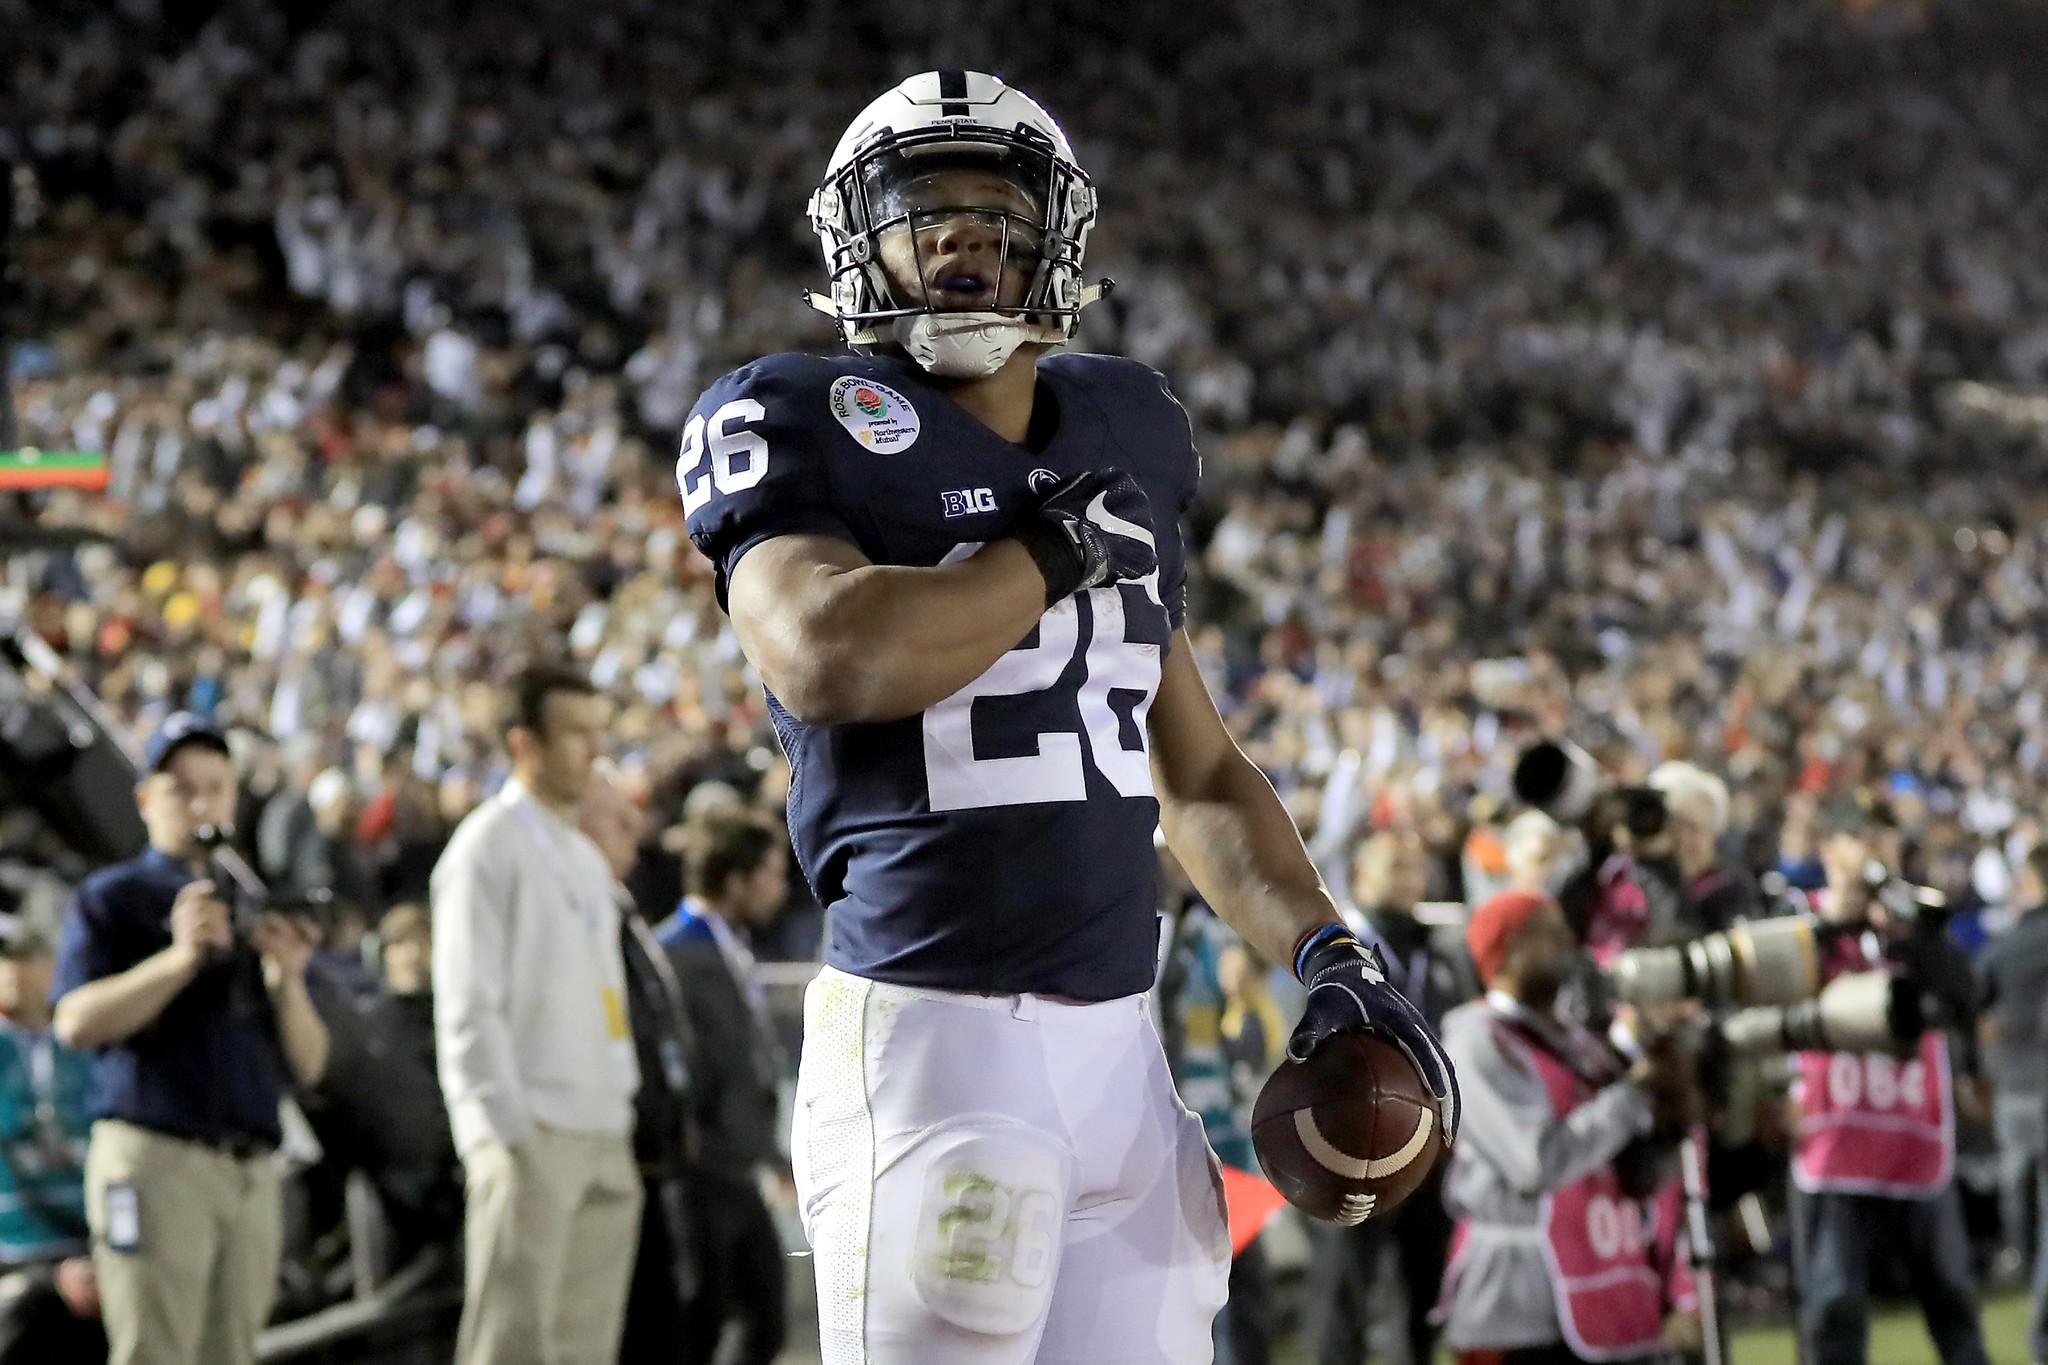 brand new 429dd 81d56 Penn State's Saquon Barkley returns to work, fueled by Rose ...